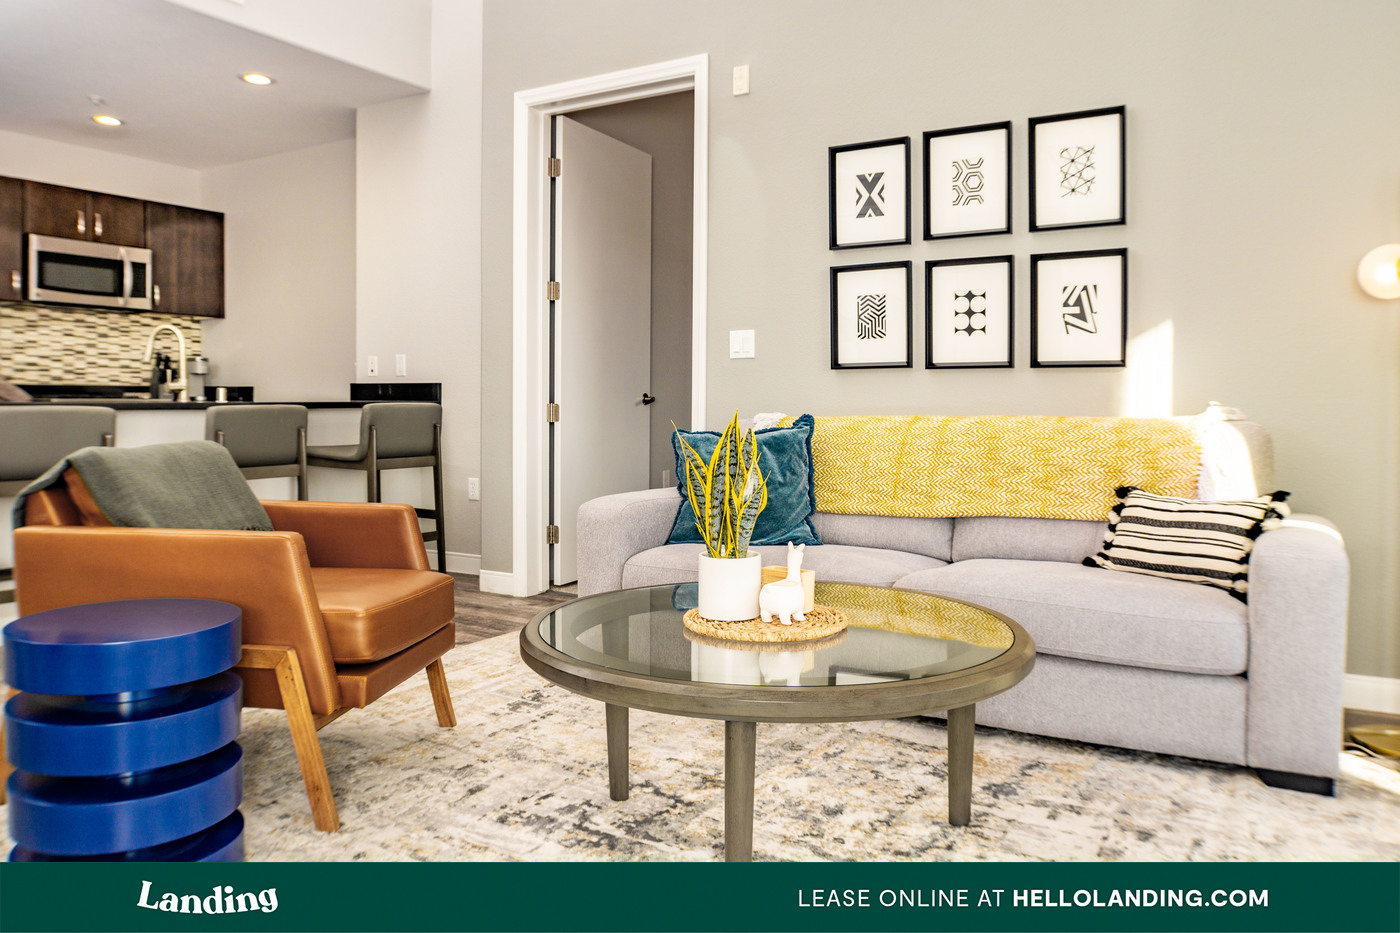 The Gramercy Residences 341 for rent